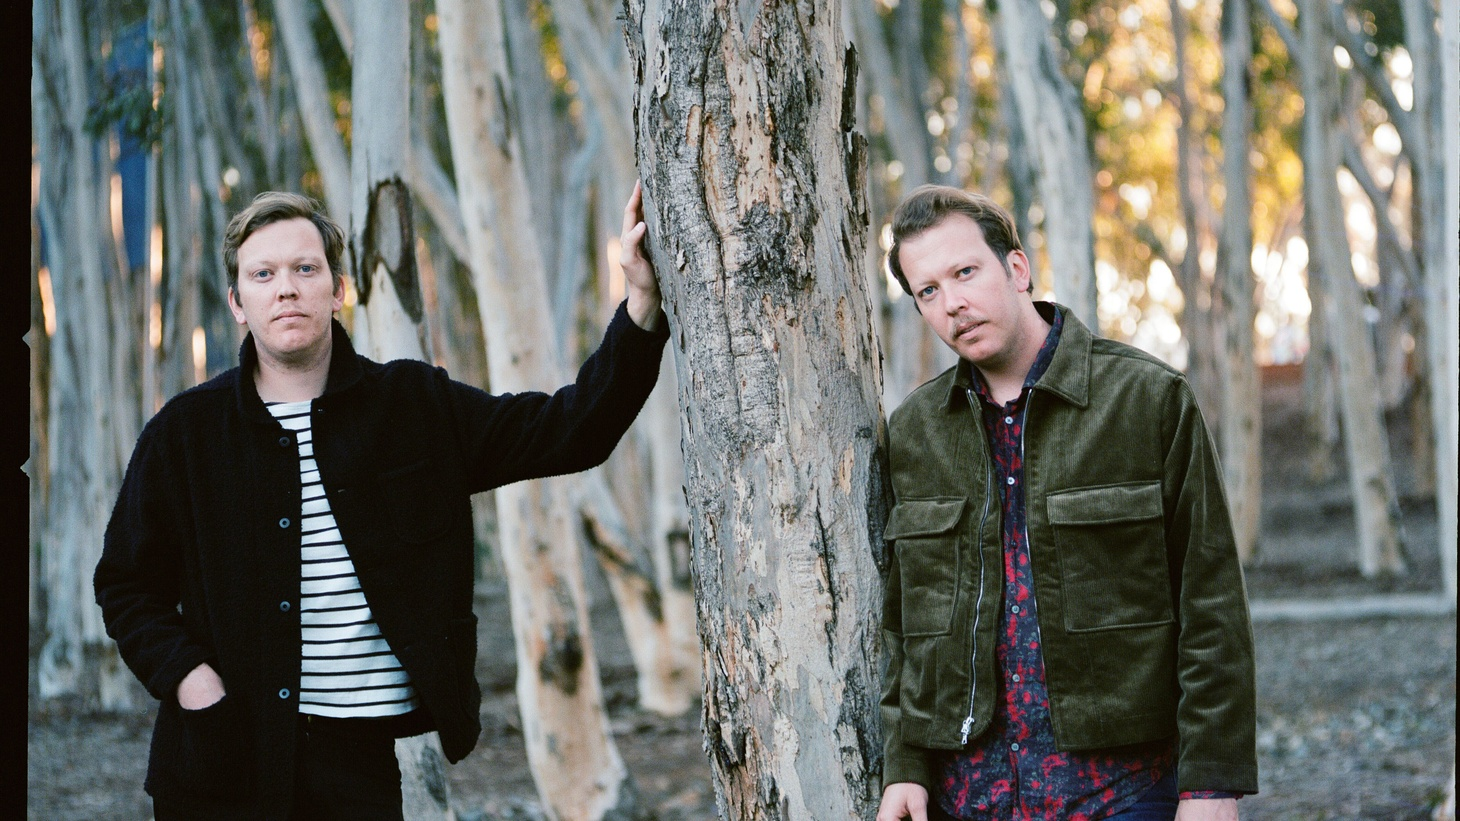 """Identical twins Jared and Jonathan Mattson are known as the Mattson 2, a dynamic jazz-infused duo. """"Essence"""" is a throwback, smooth sounding jam that blends genres."""